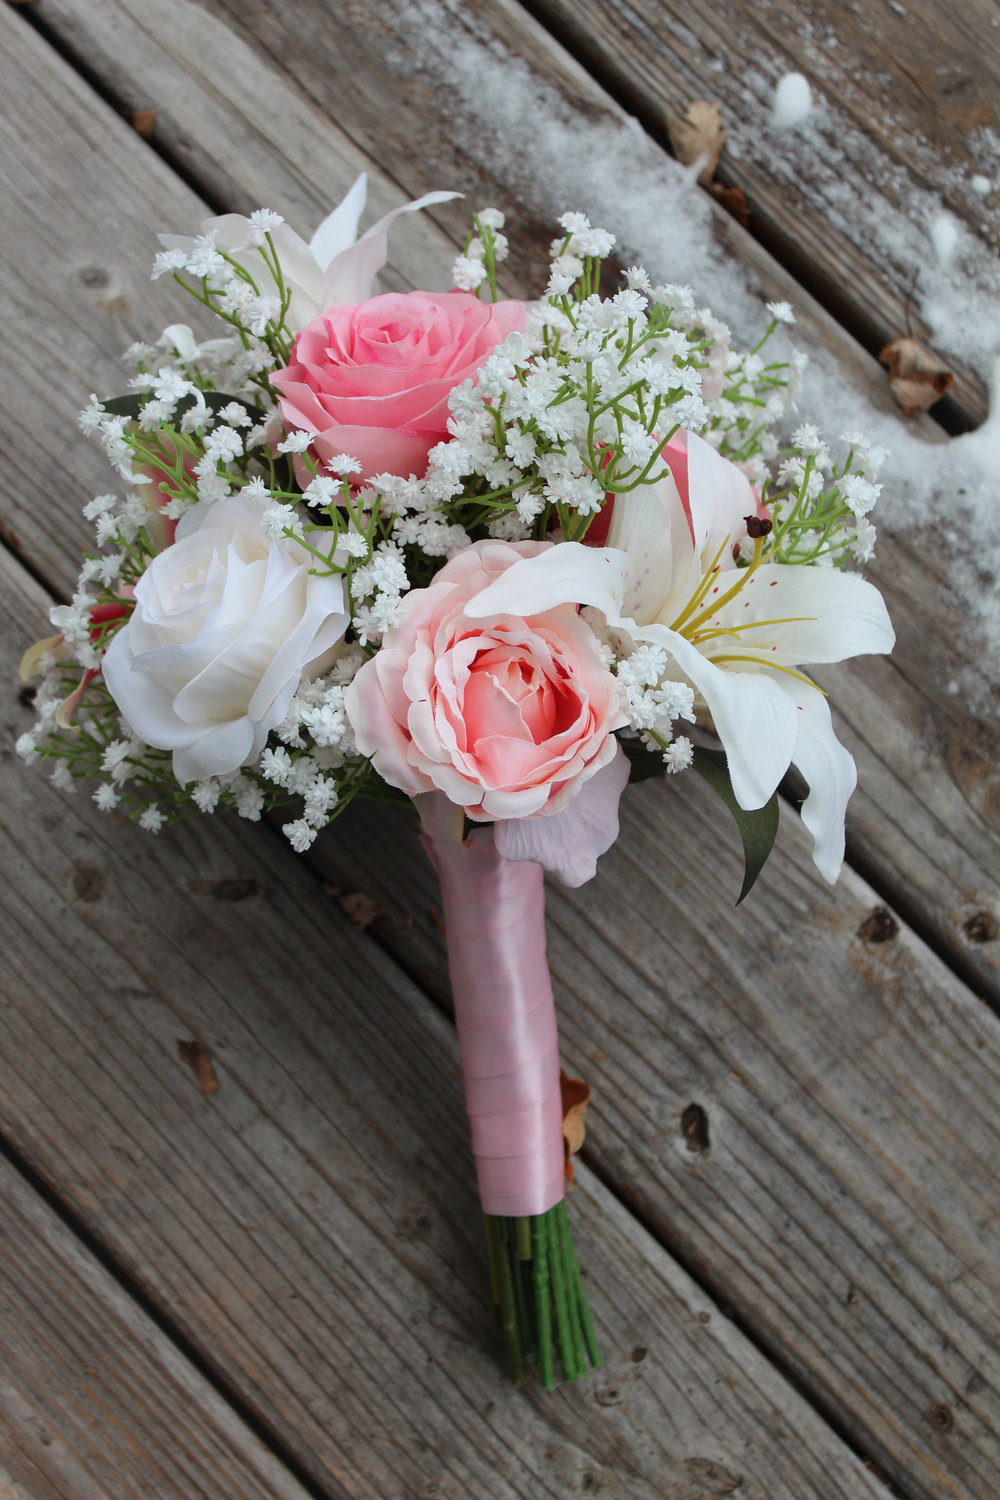 Lilies, roses and baby's breath. Simple, beautiful, elegant!